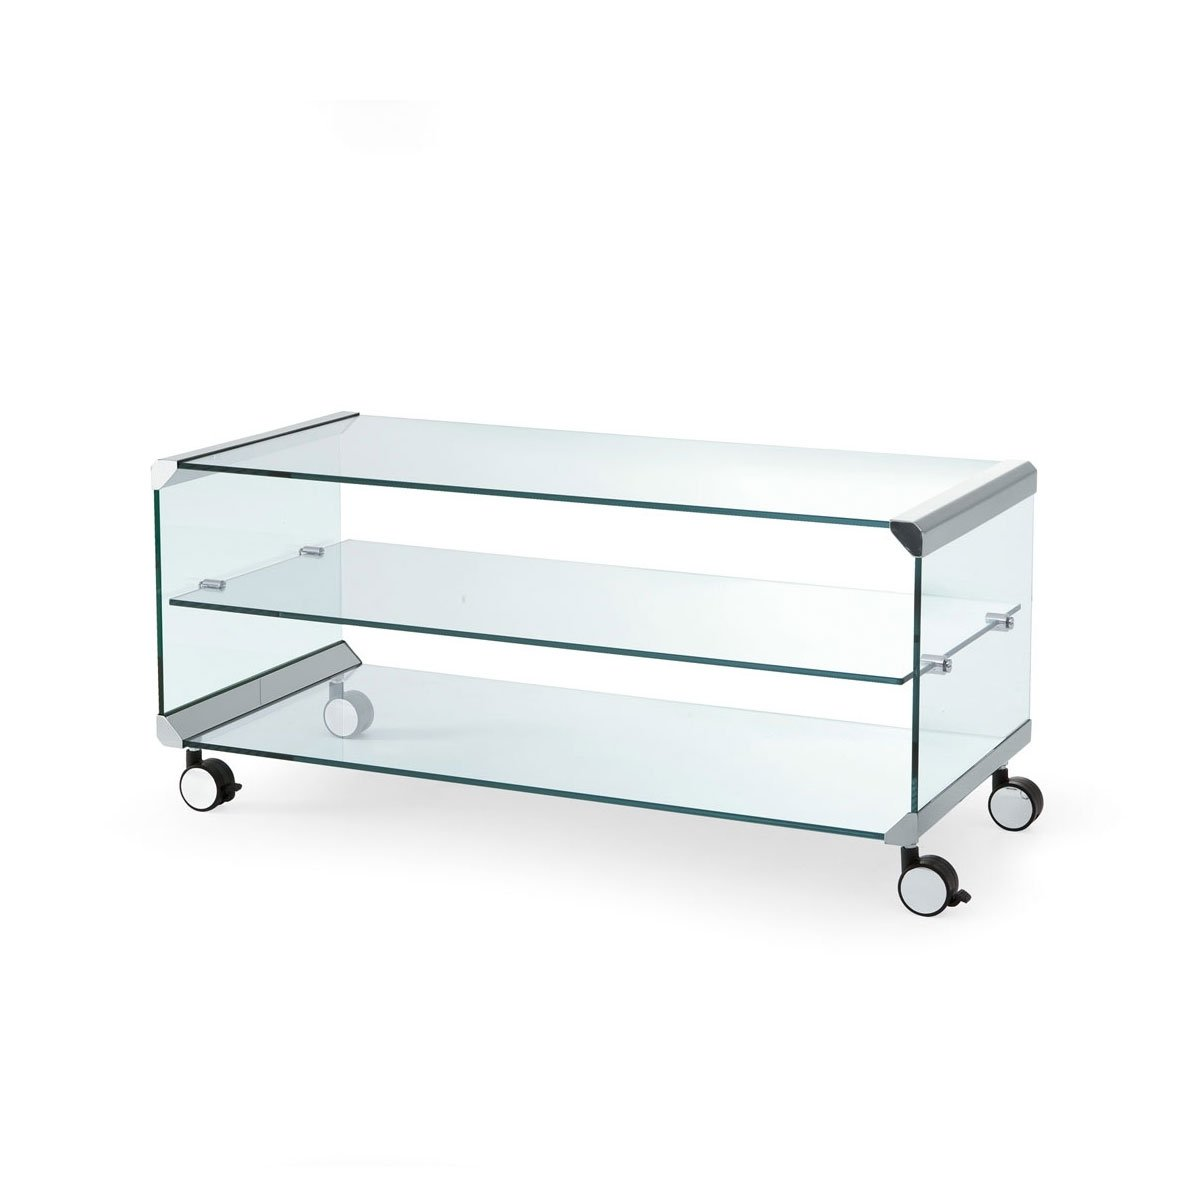 George 1 Glass And Metal Coffee Table With Castors By Gallotti Radice Klarity Glass Furniture